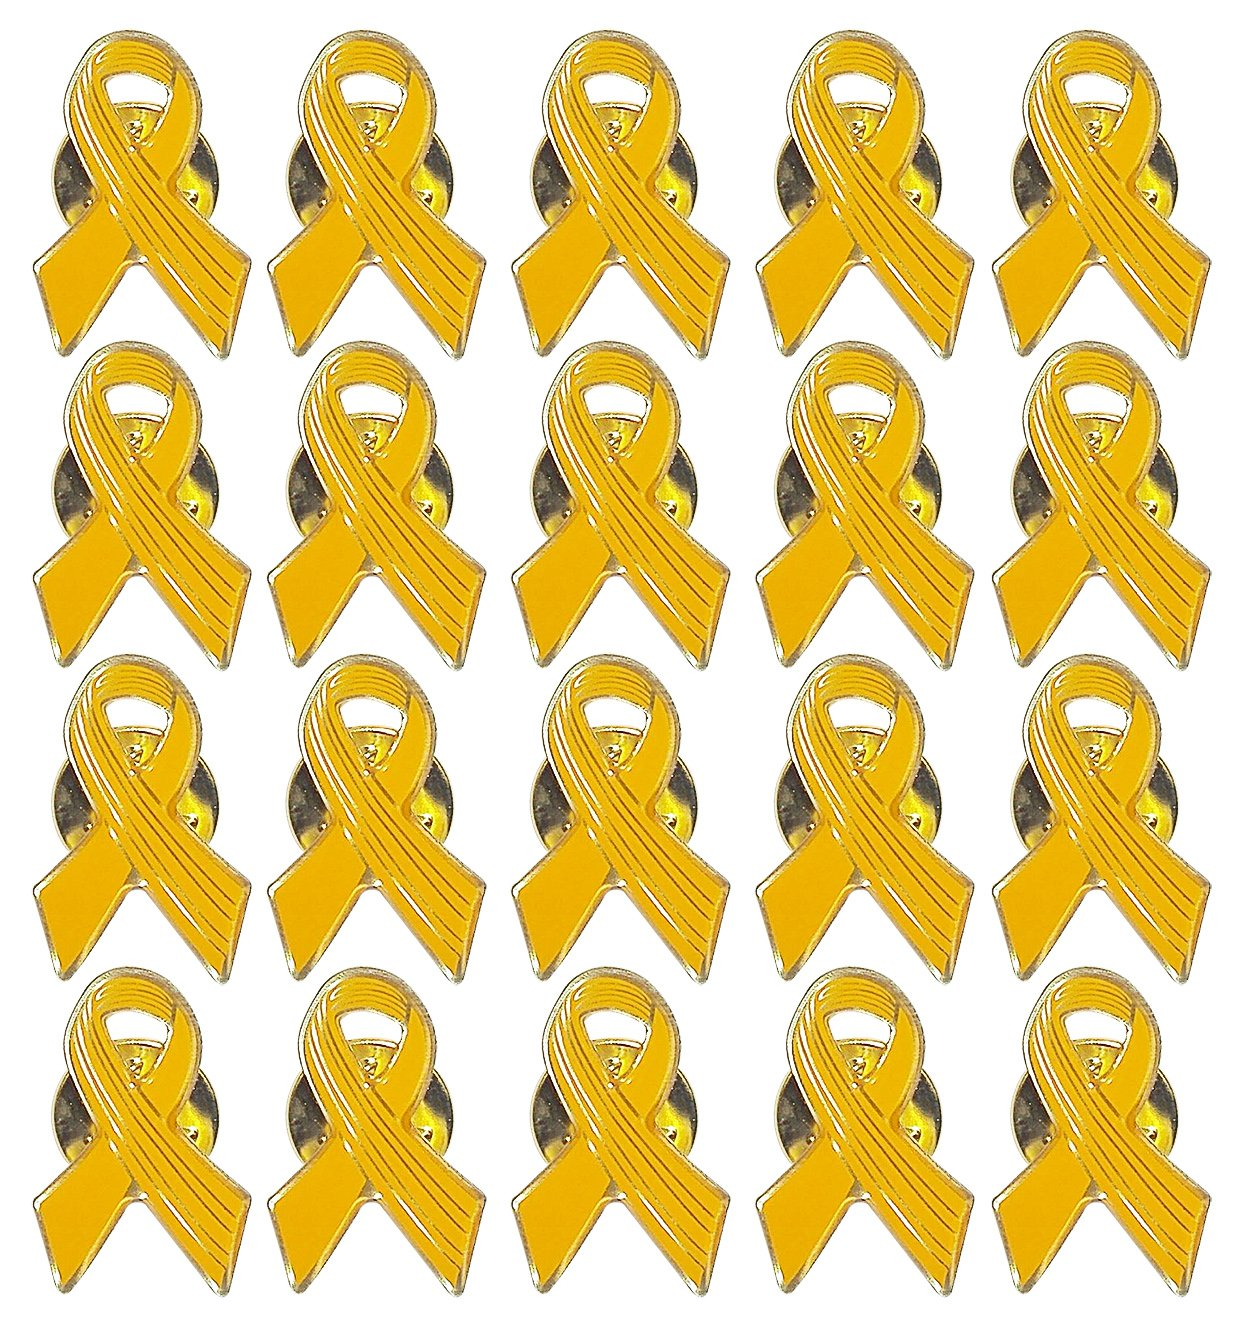 Lot of 20 - Yellow Awareness Ribbon Lapel Pins - Enamel On Gold Tone Metal.